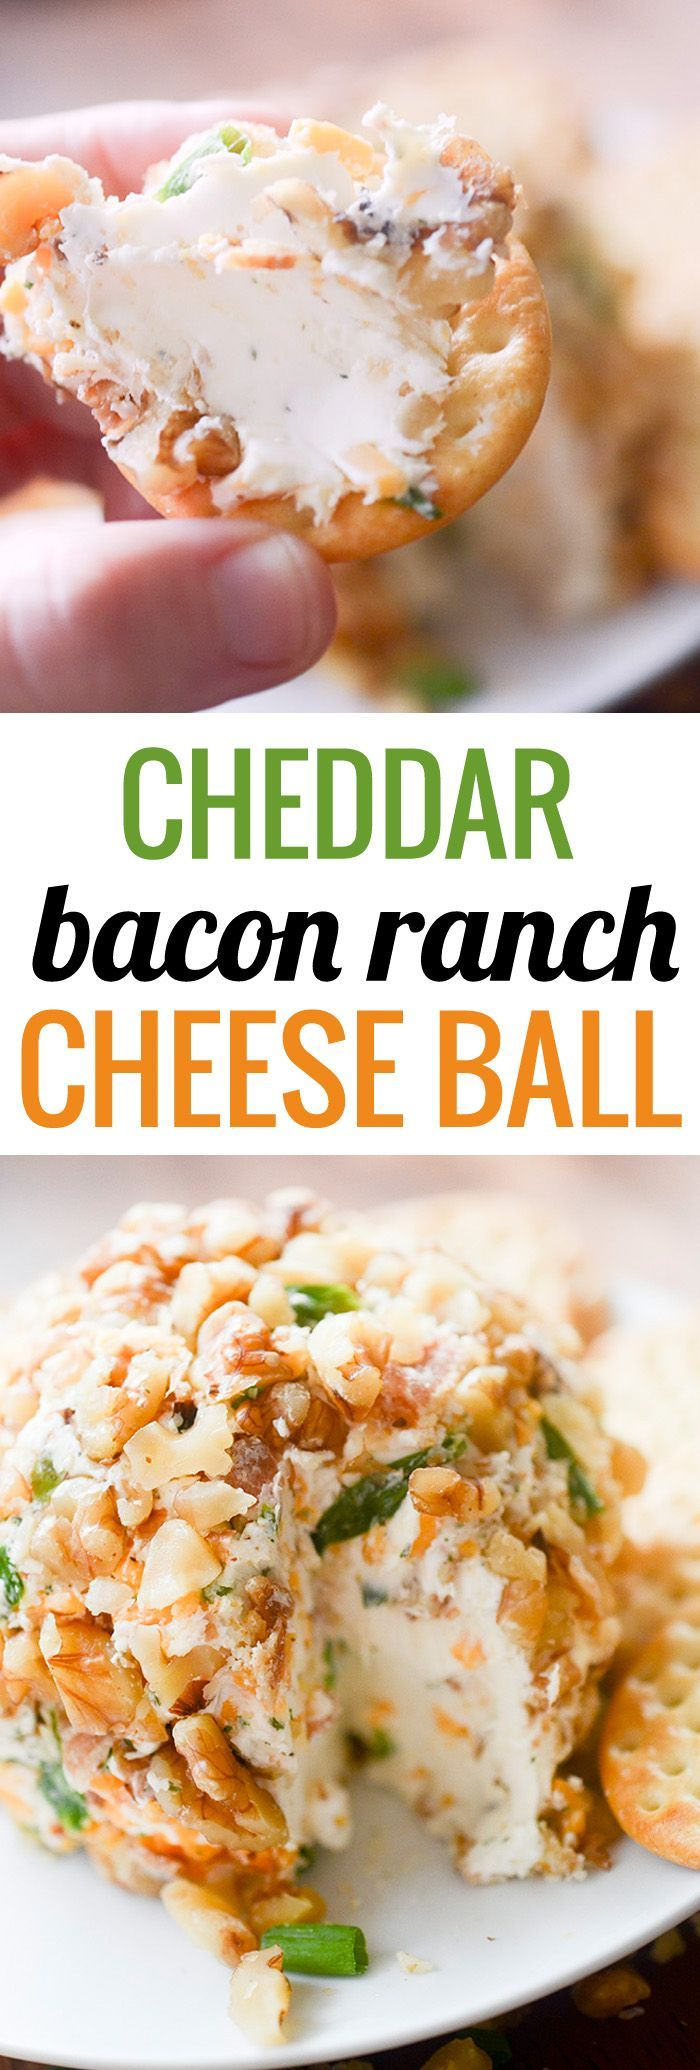 Cheddar Bacon Ranch Cheese Ball - perfect appetizer for any party.